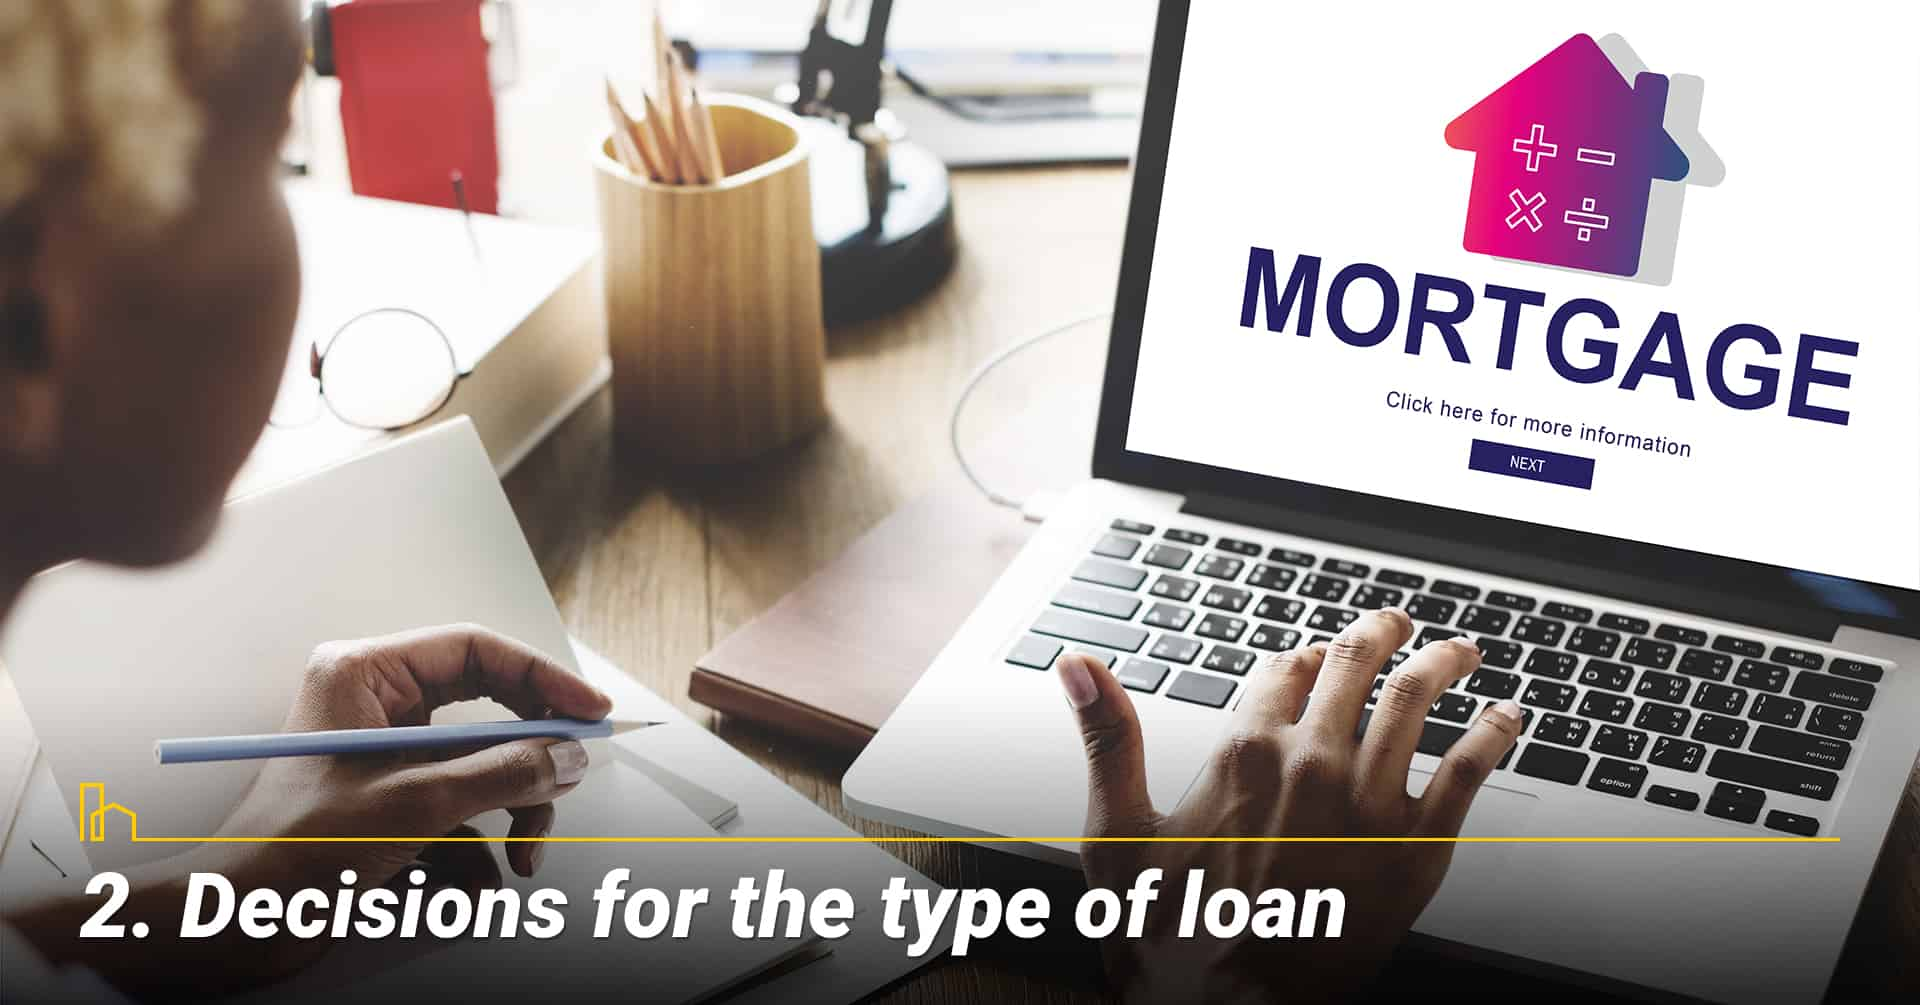 Decisions for the type of loan